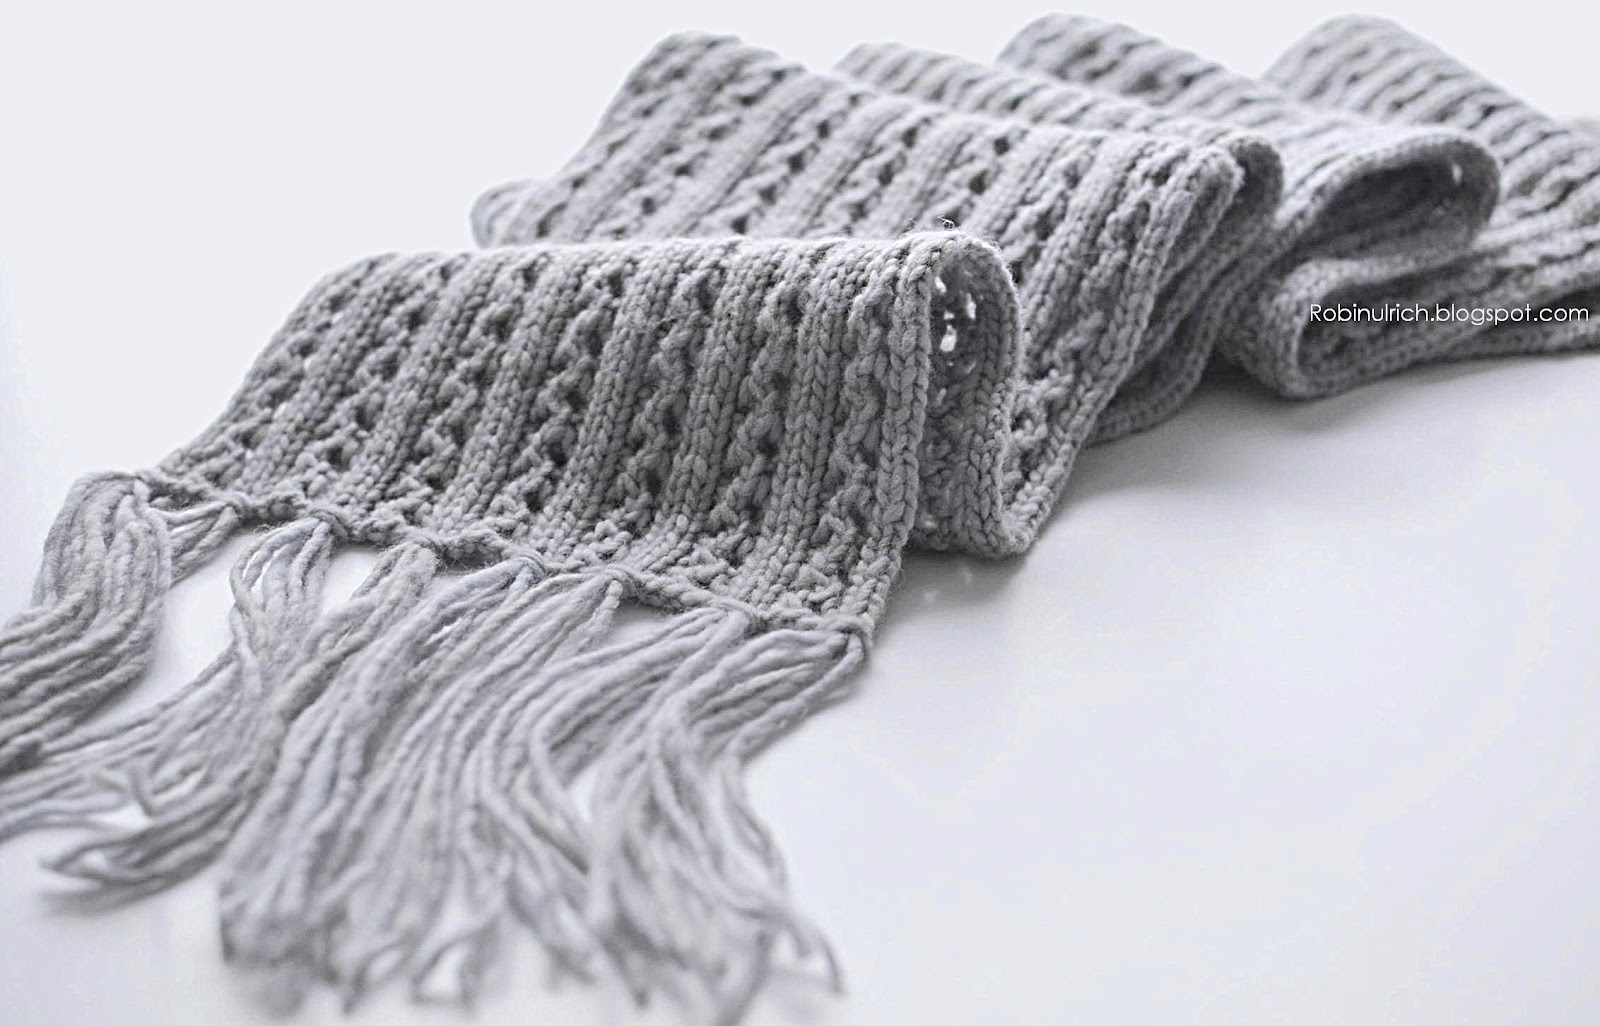 New Knitting Patterns : Robin Ulrich Studio: New Knitting Pattern - Frostlight Scarf